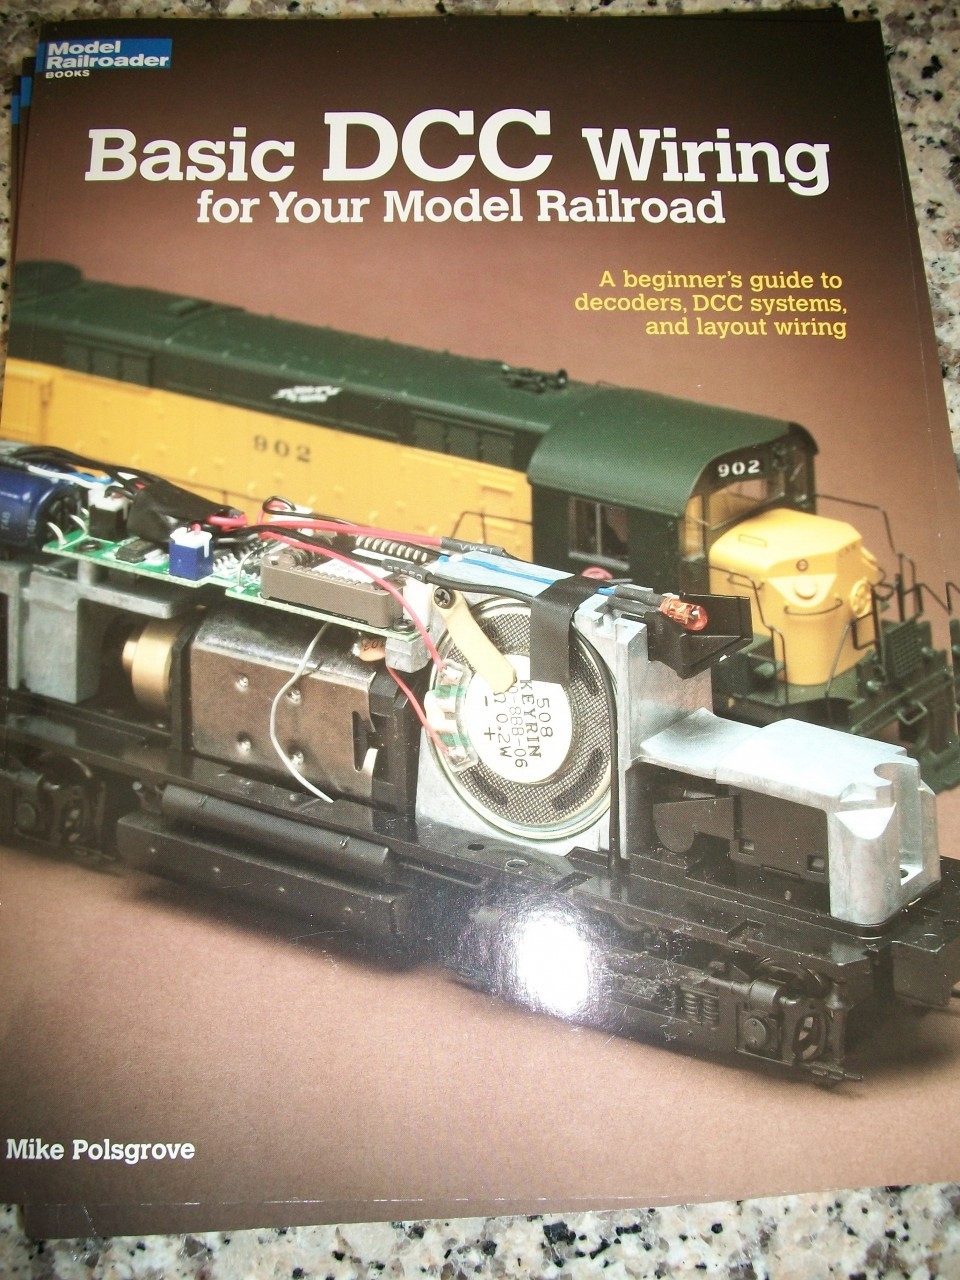 model railroader basic dcc wiring for your model railroad image 1 loading zoom [ 960 x 1280 Pixel ]